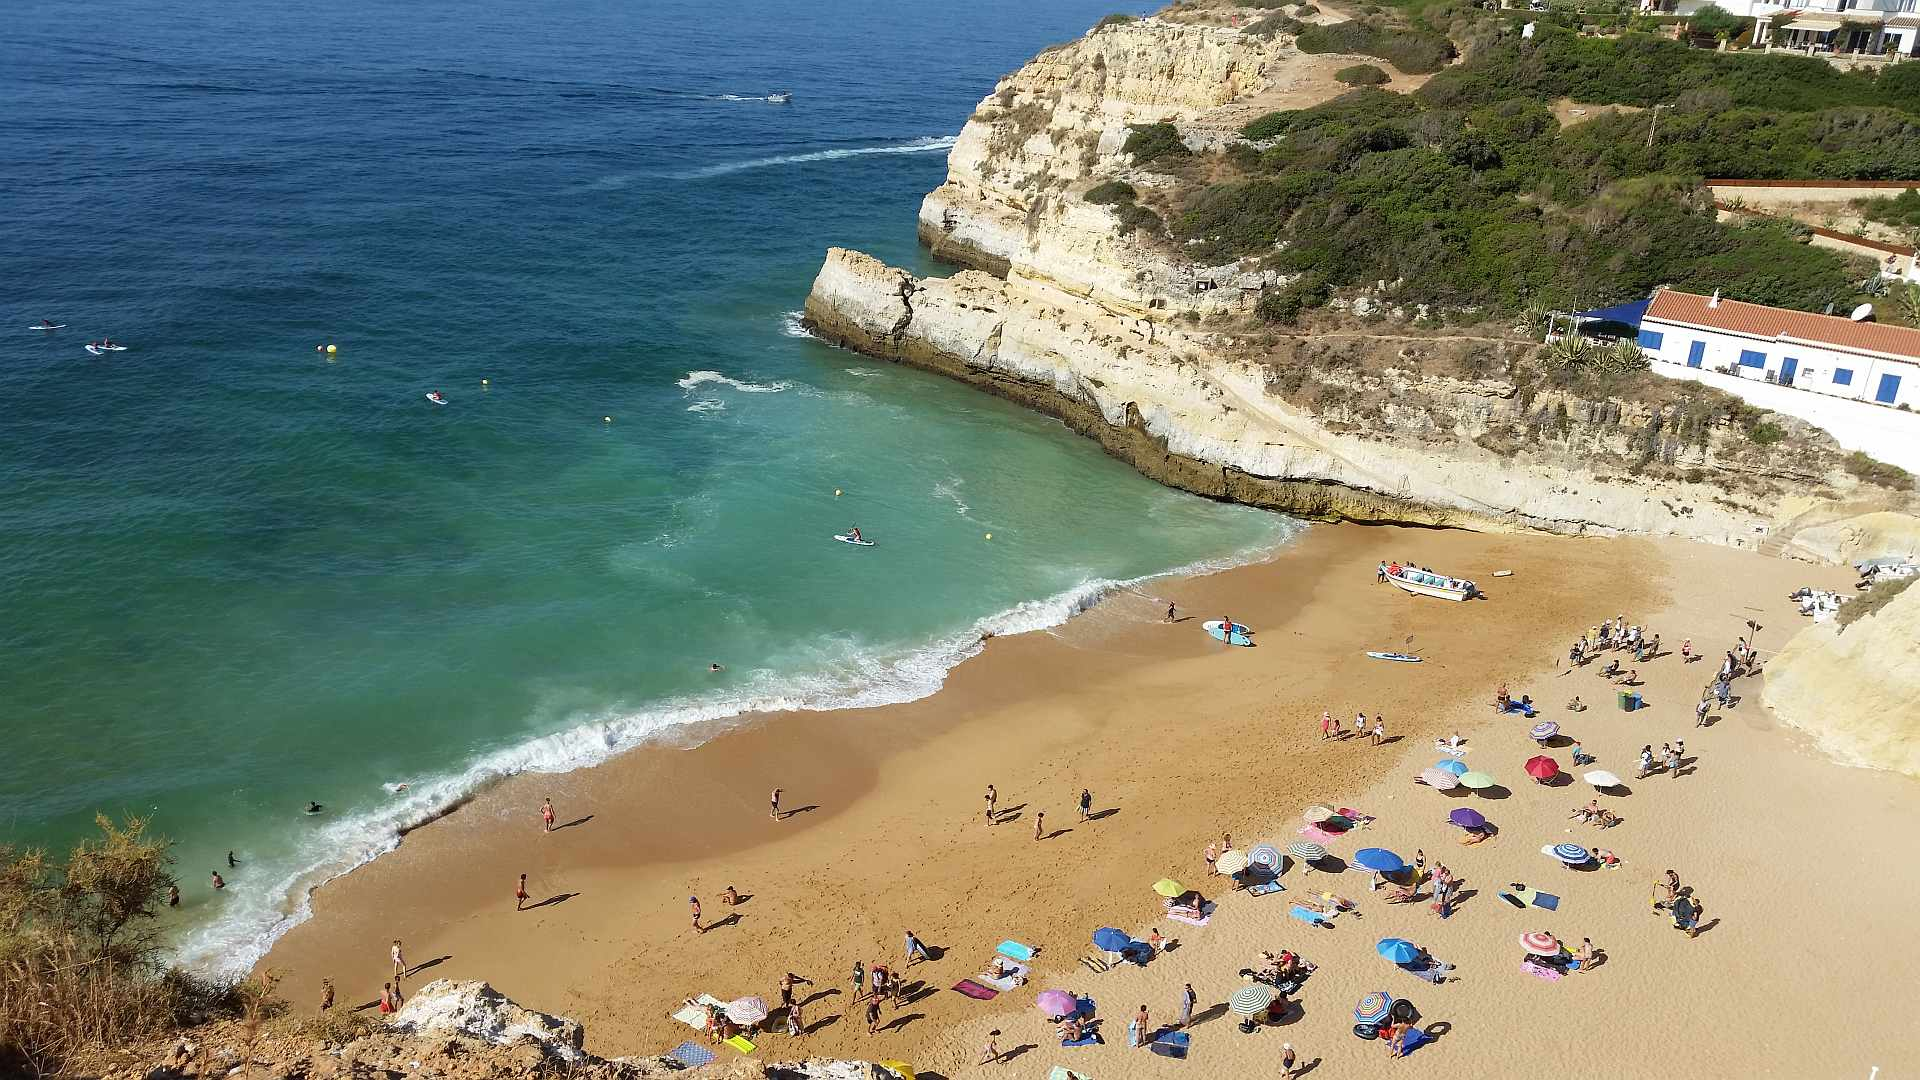 Lagao - Algarve - Praia de Benagil in the morning